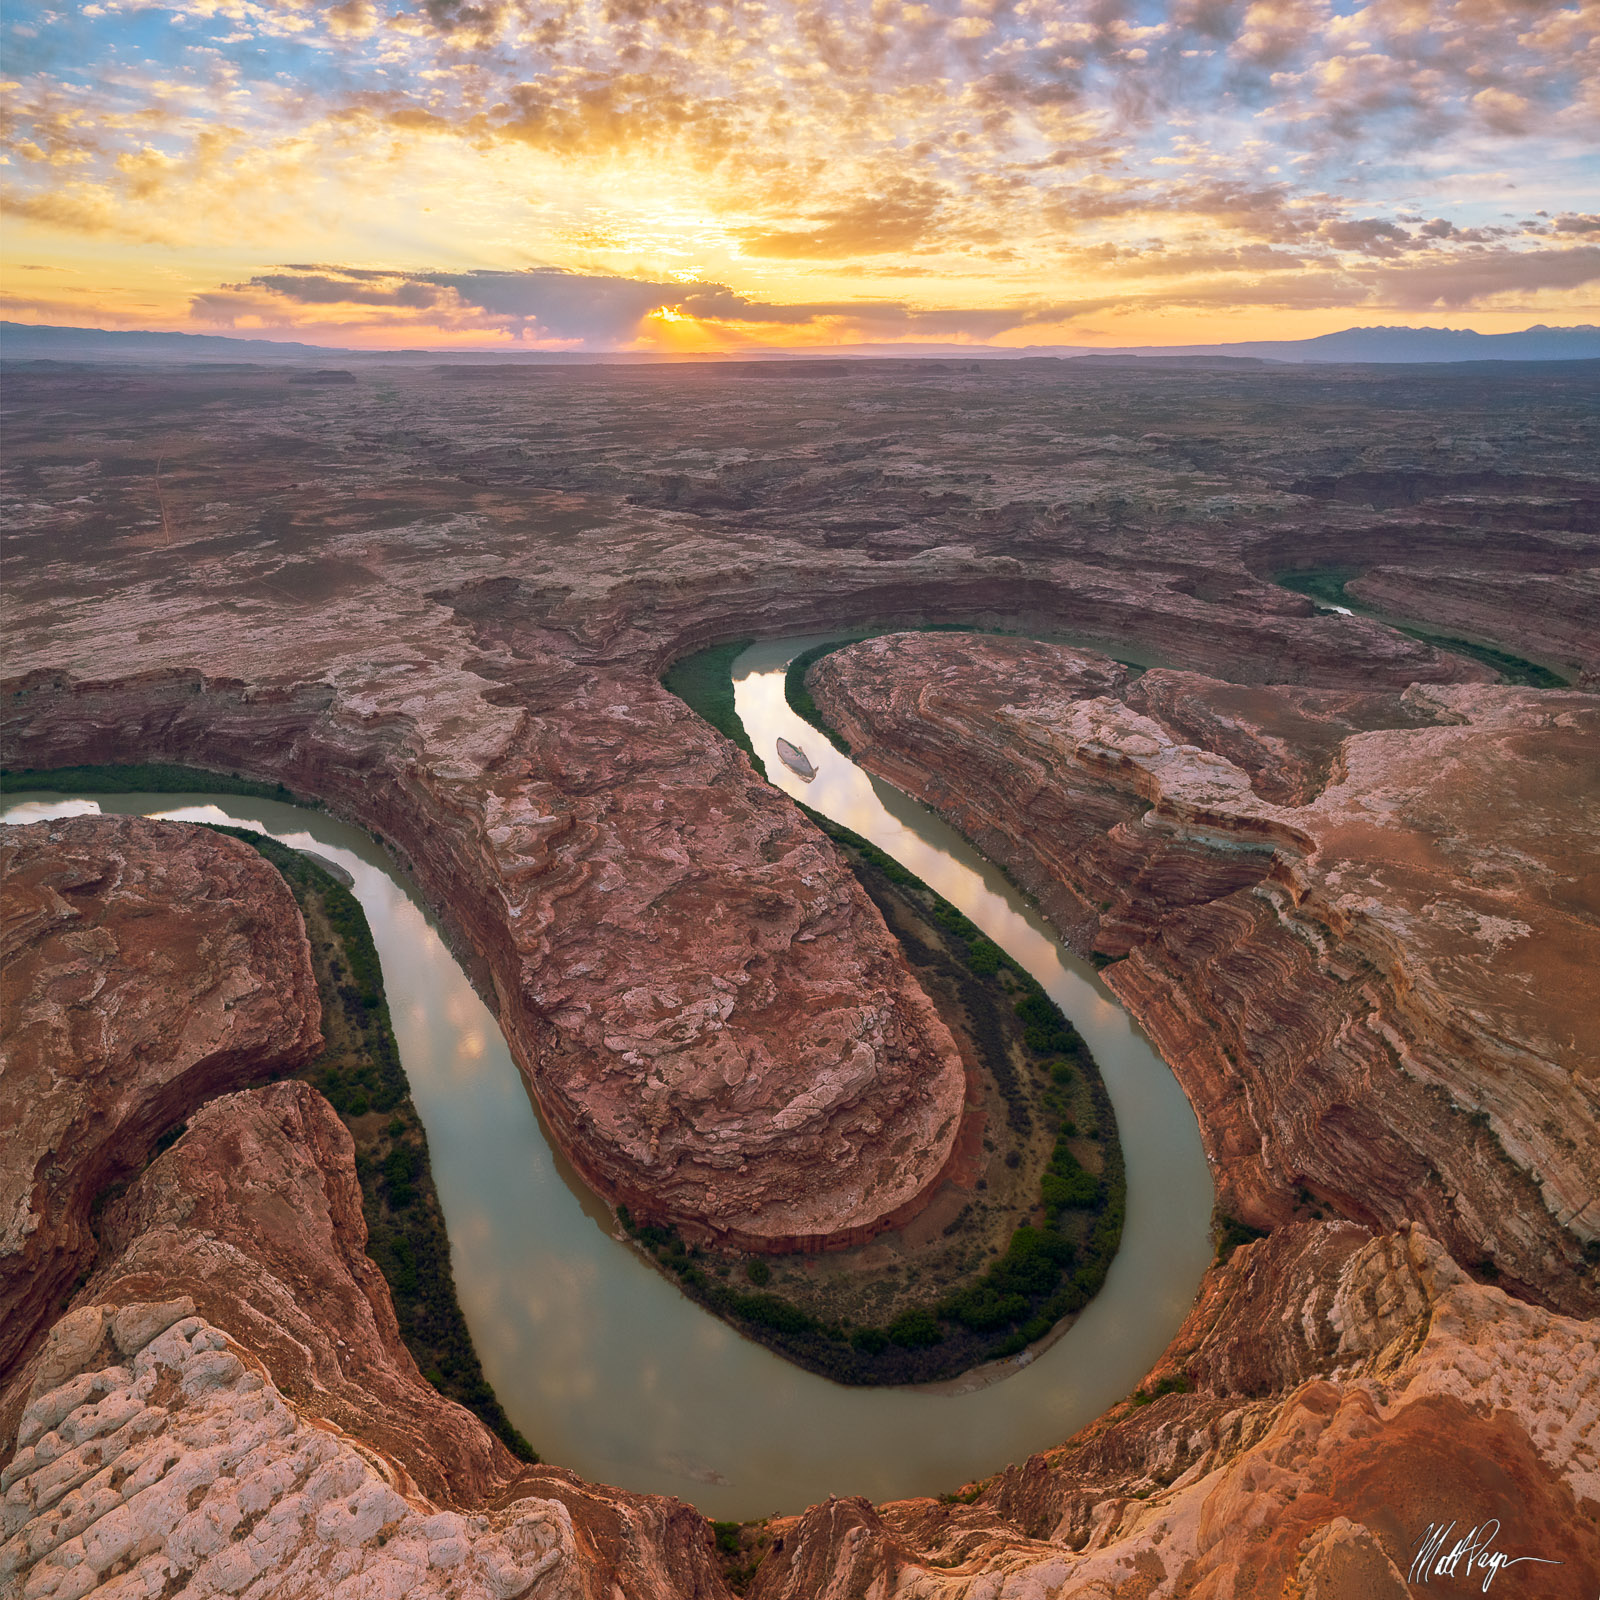 Spending the morning photographing the Green River winding through sandstone in Utah during sunrise is always a special time...